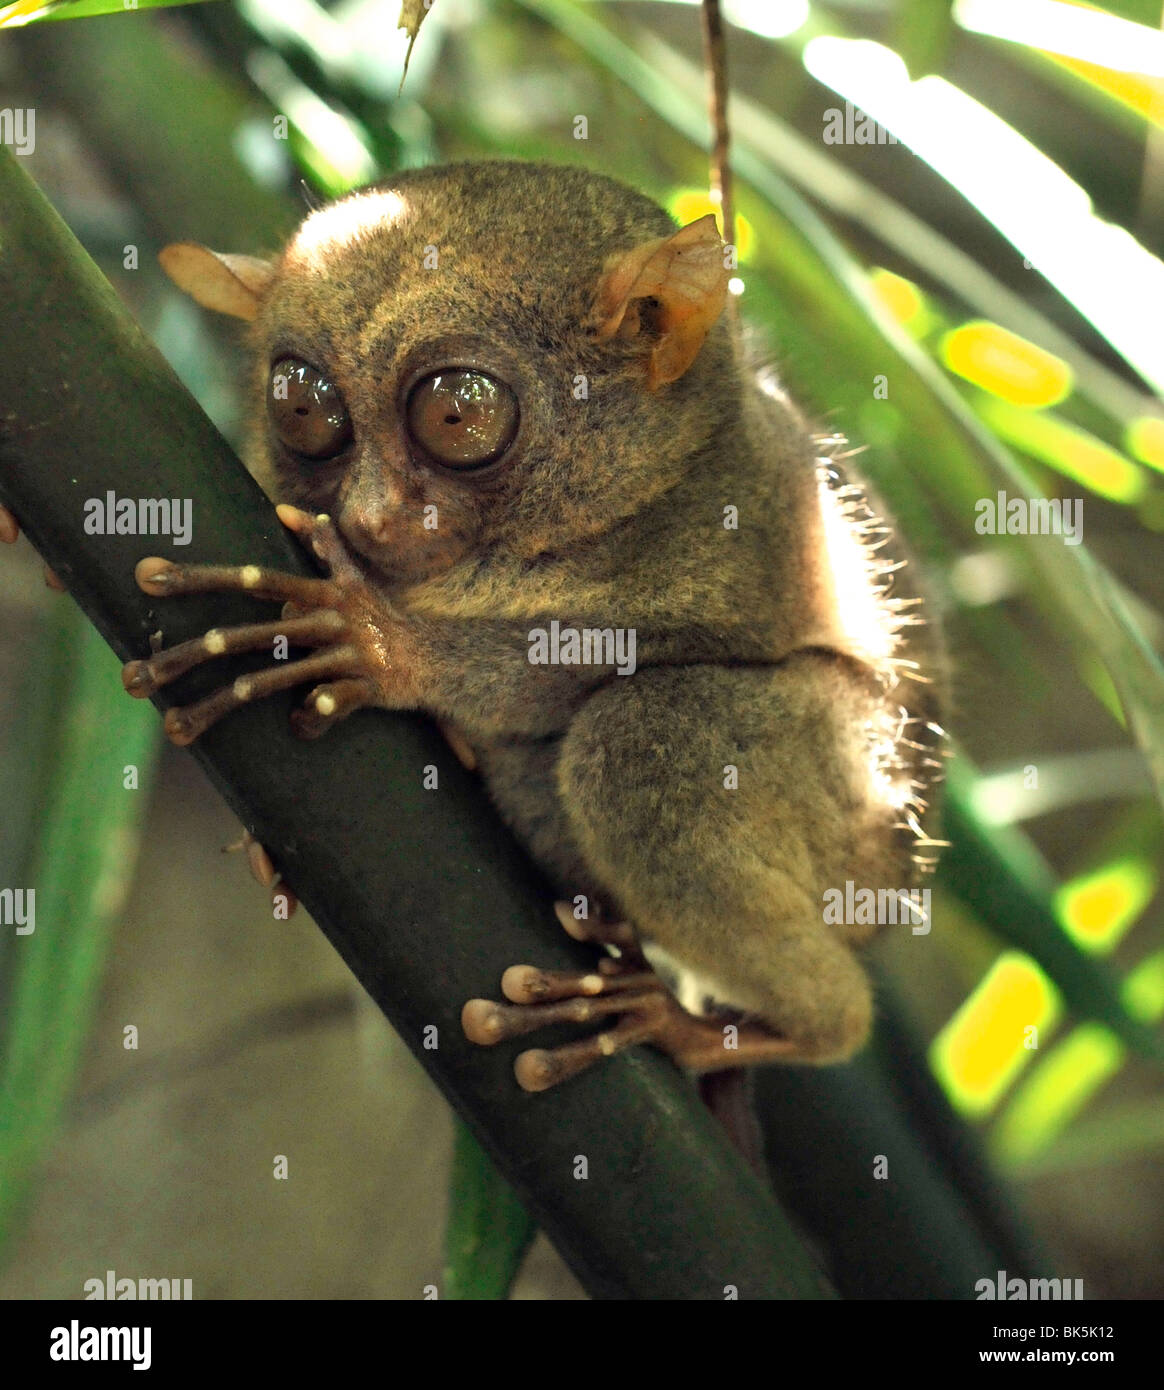 The Philippine tarsier known locally as the Maumag, an endangered tarsier species endemic to the Philippines - Stock Image